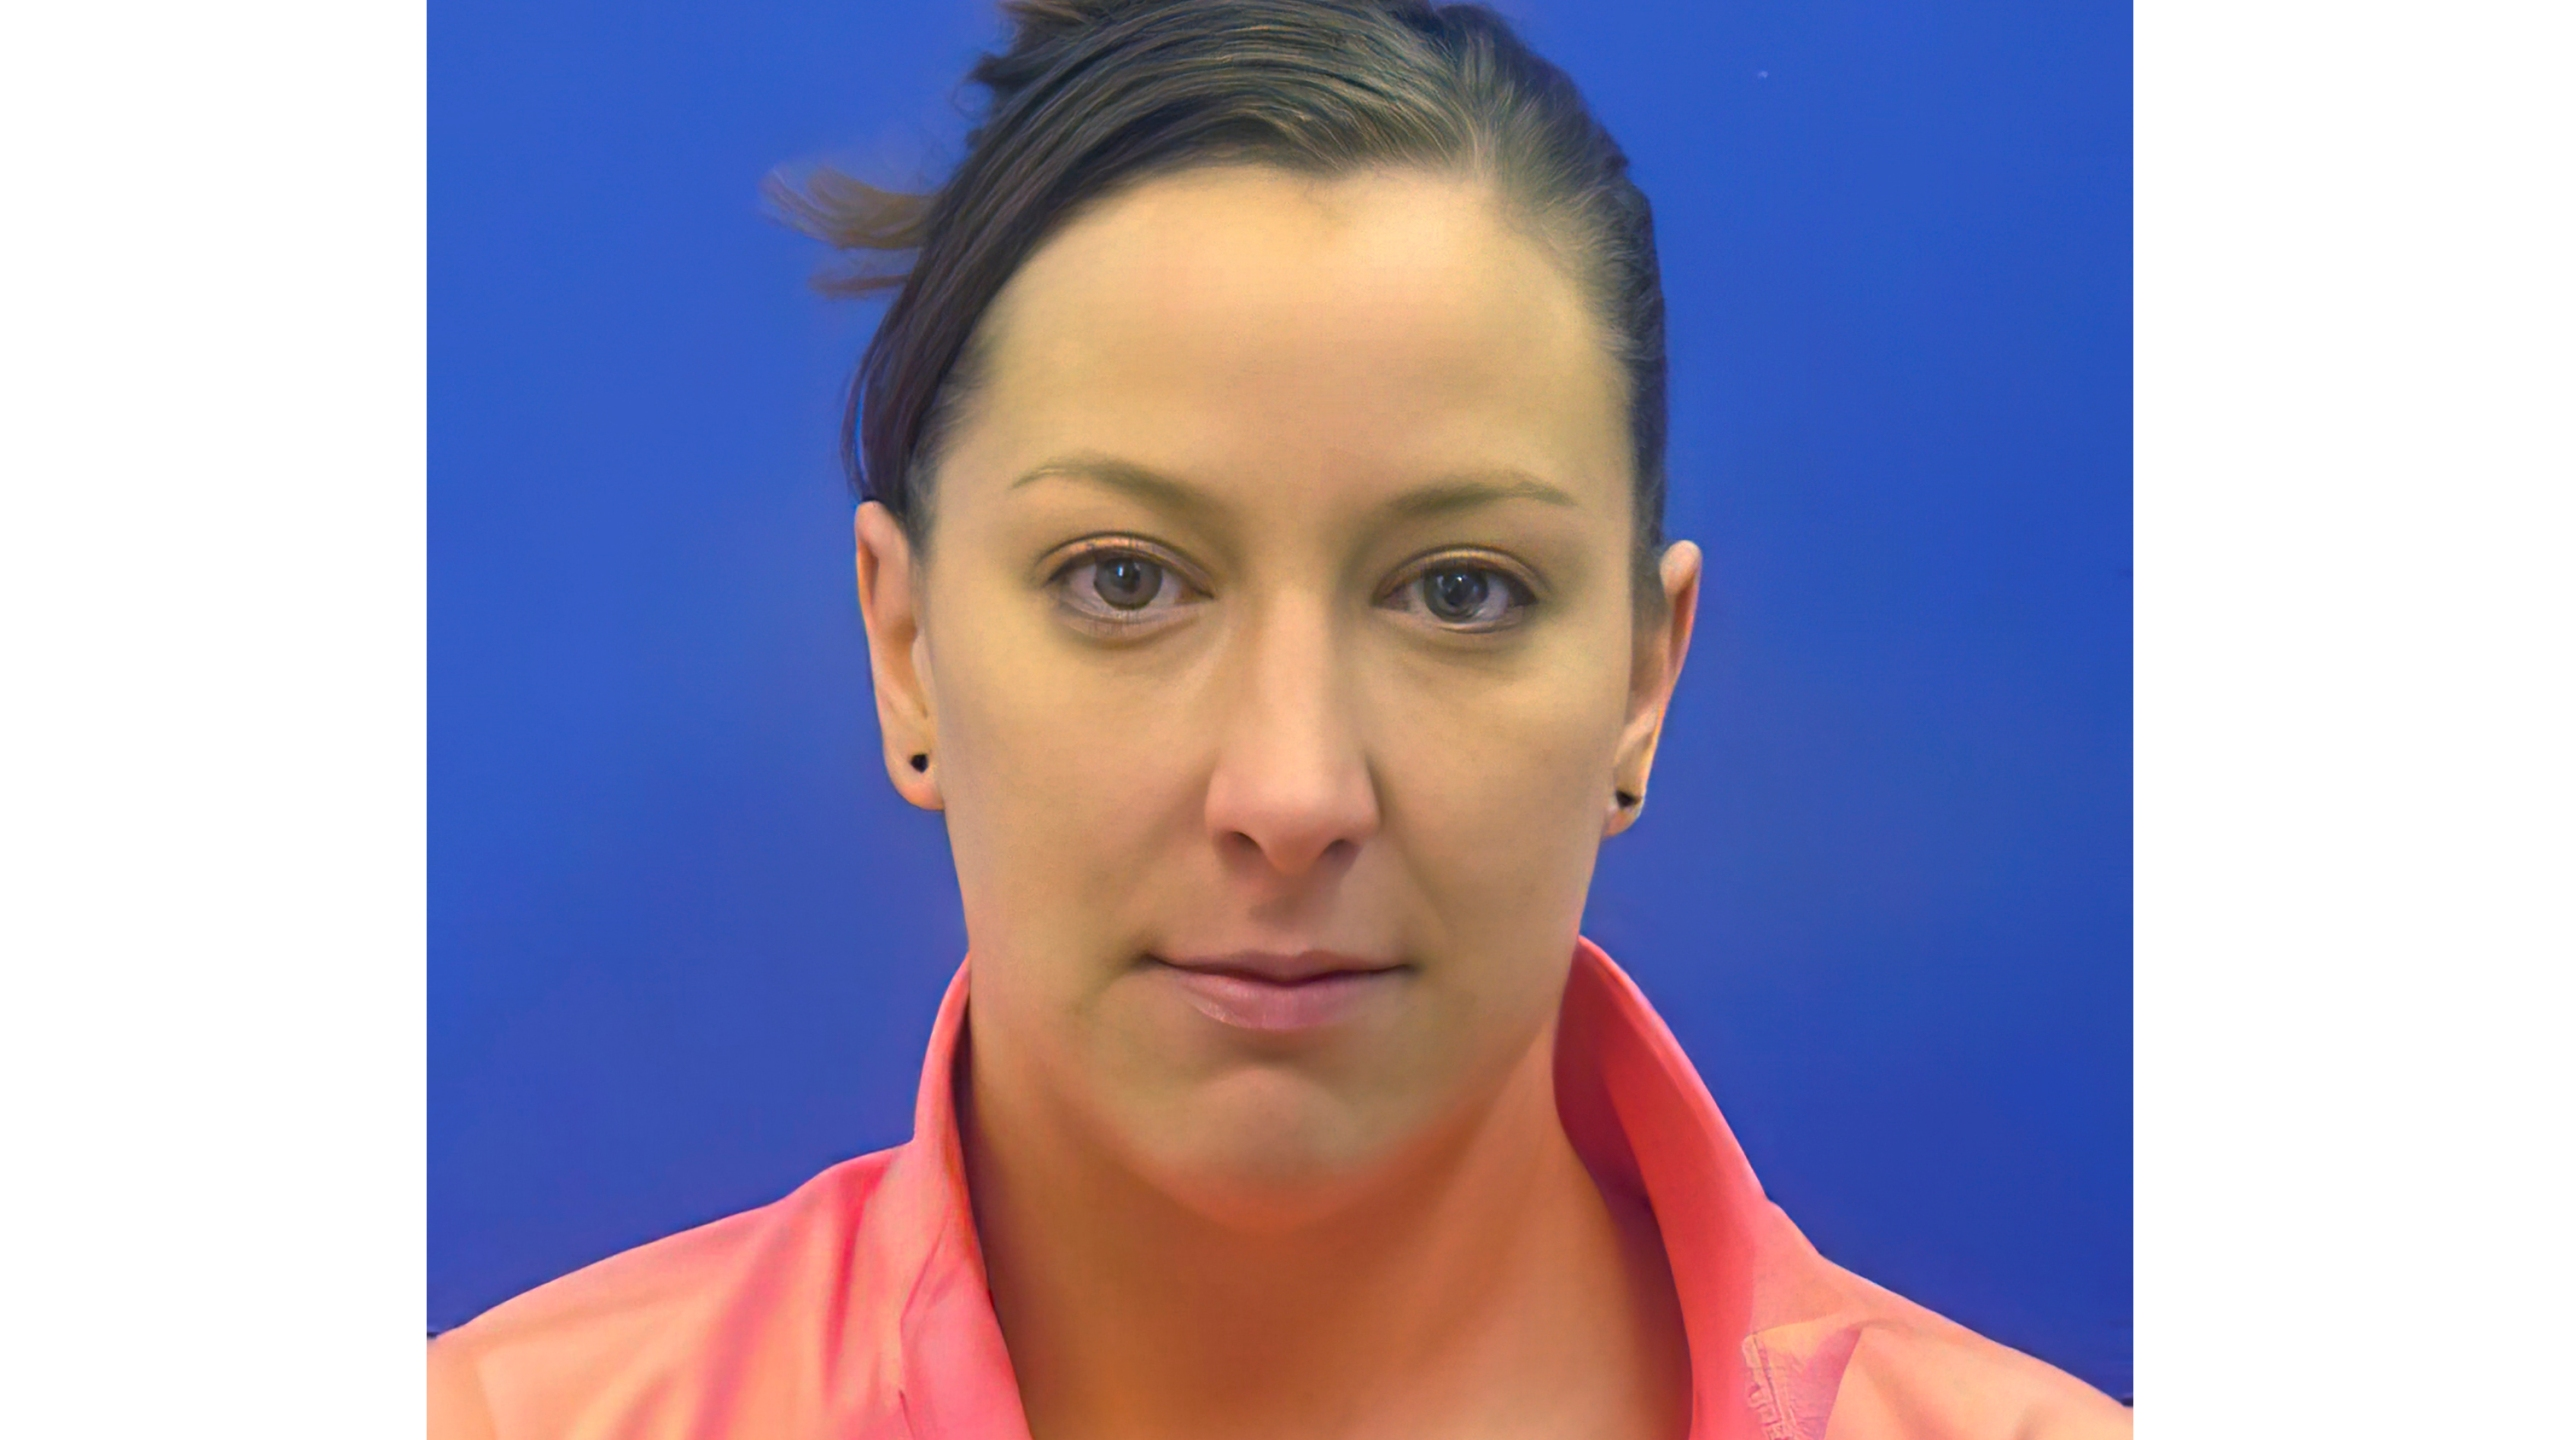 This driver's license photo from the Maryland Motor Vehicle Administration (MVA), provided to AP by the Calvert County Sheriff's Office, shows Ashli Babbitt. Babbitt was fatally shot by an employee of the Capitol Police inside the U.S. Capitol building in Washington